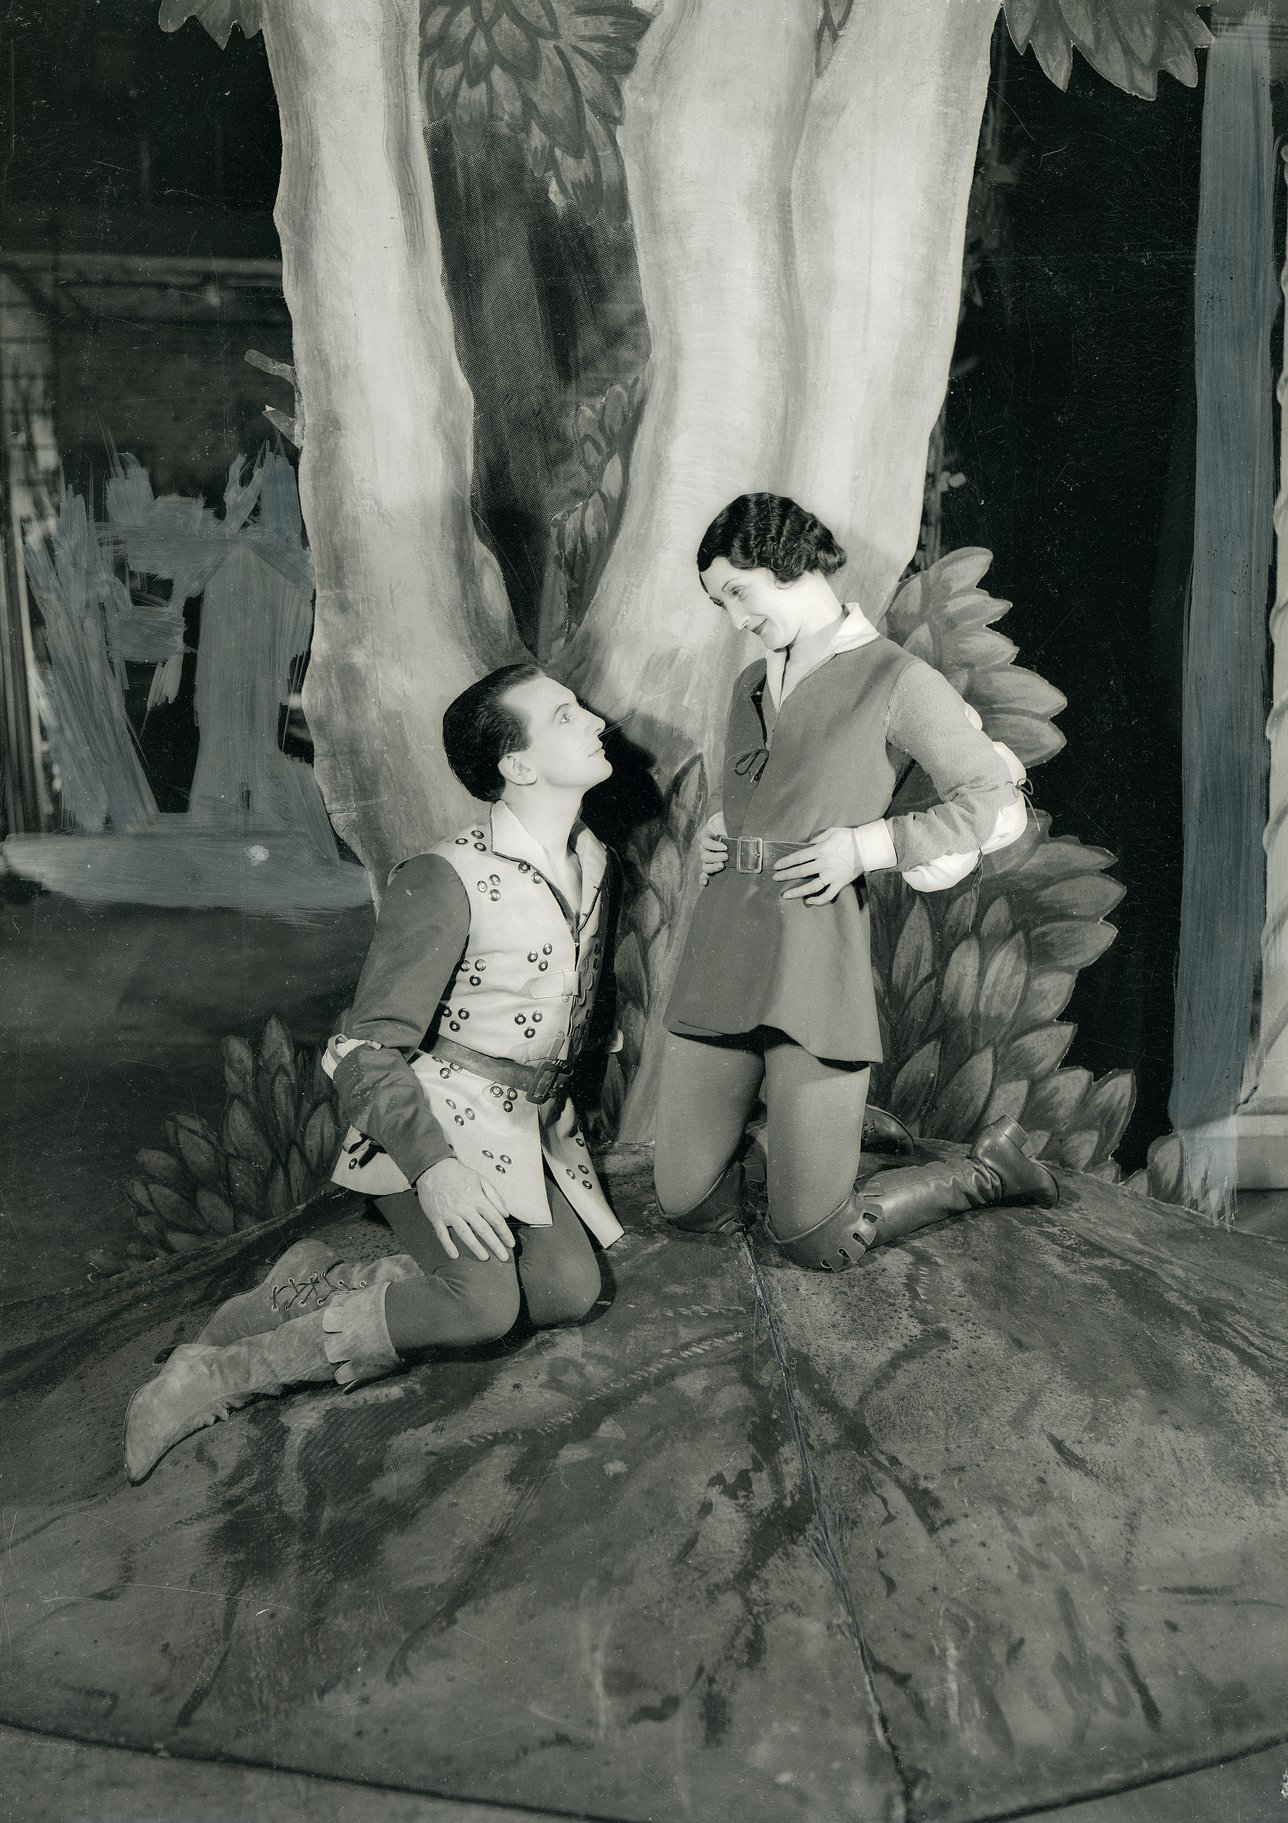 Orlando and Rosalind, dressed as Ganymede, in the forest.